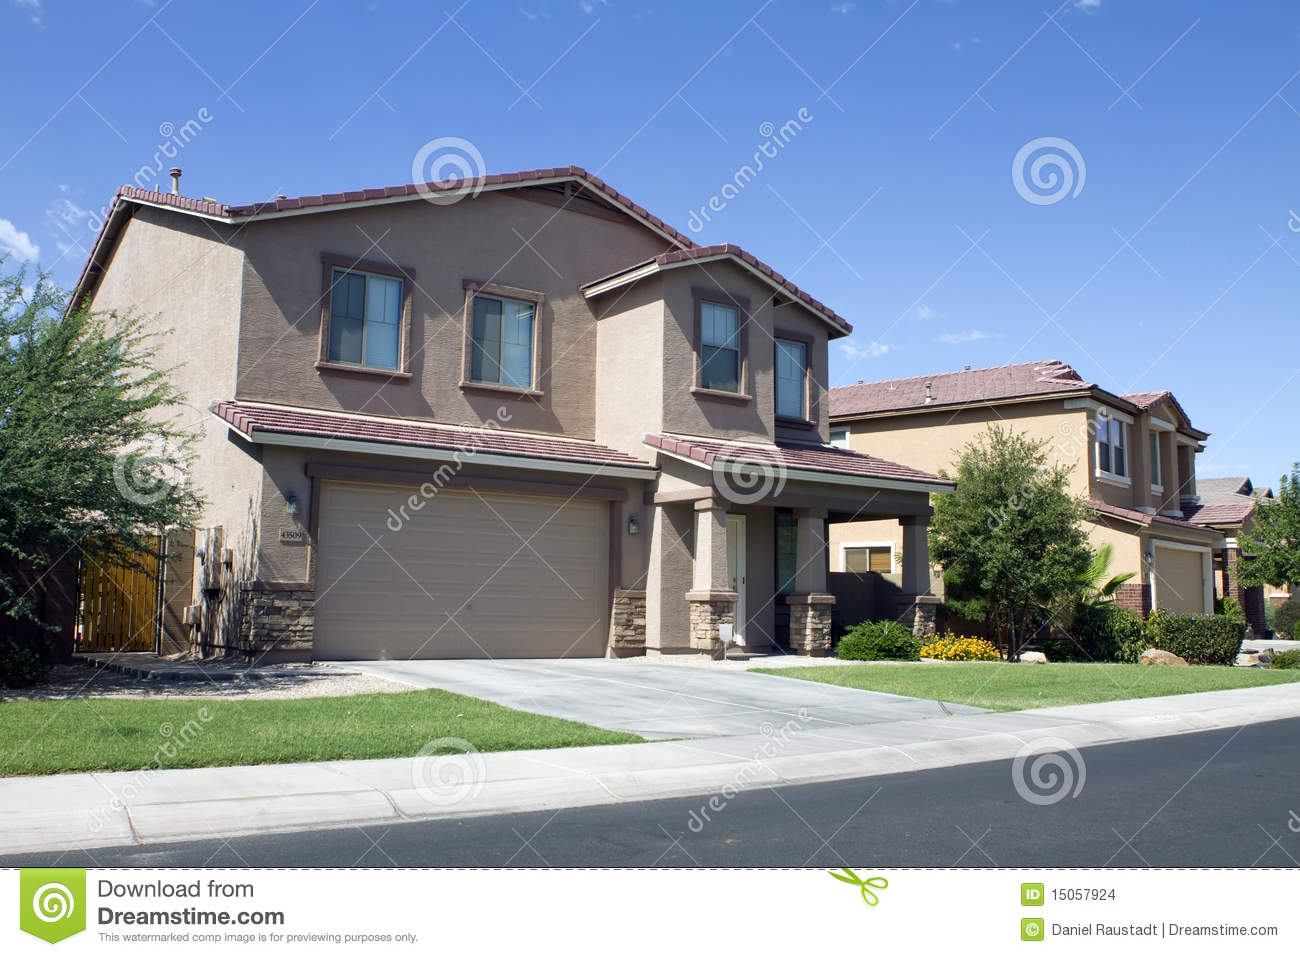 New modern classic home neighborhood stock photo image for Modern classic house